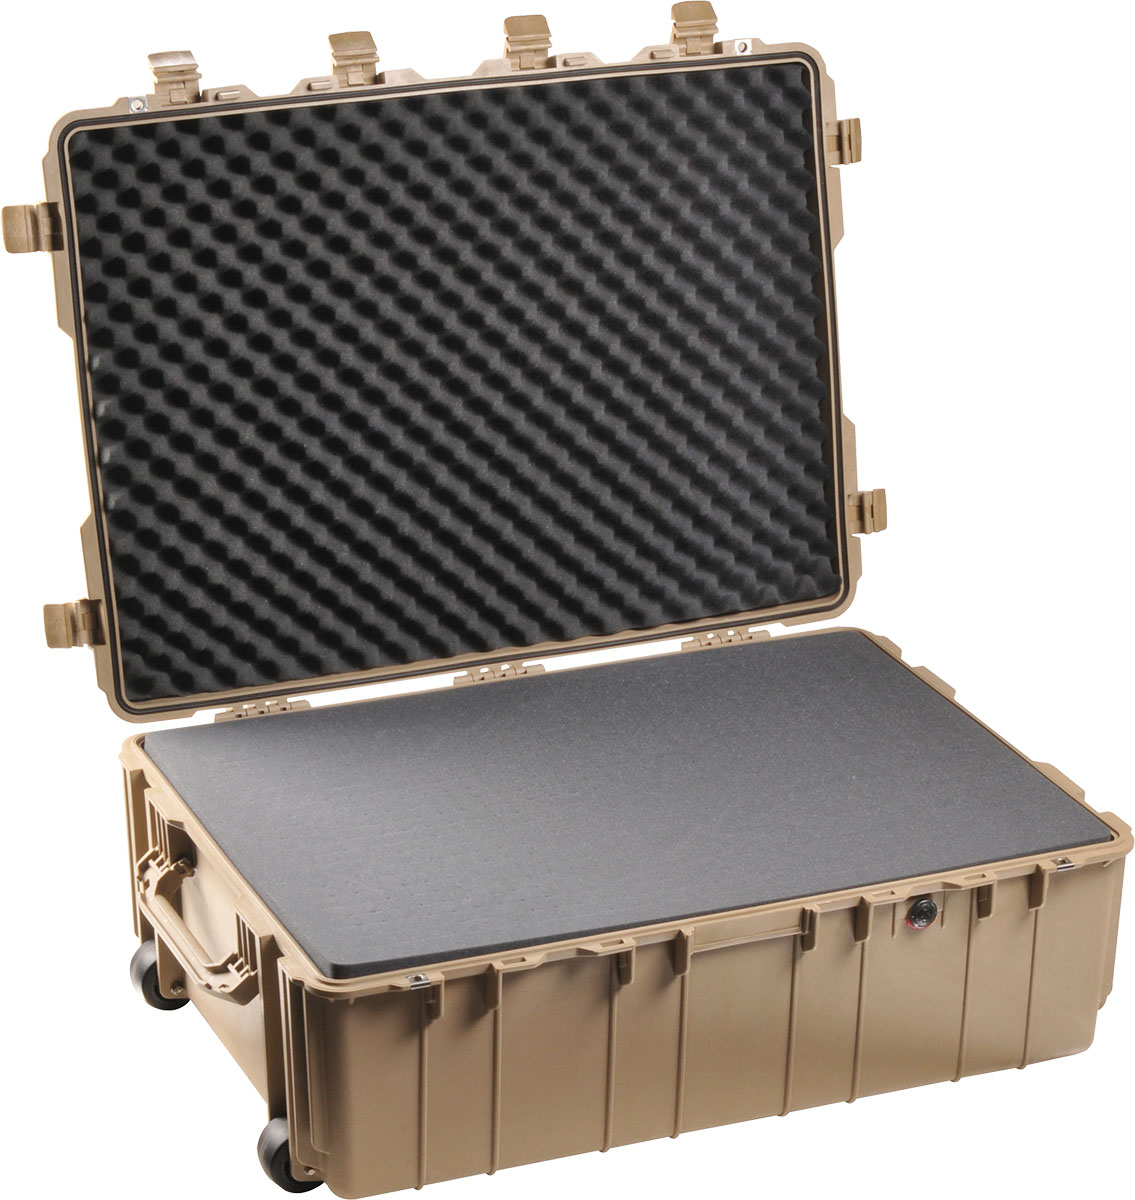 pelican 1730 tan large wheeled transport case